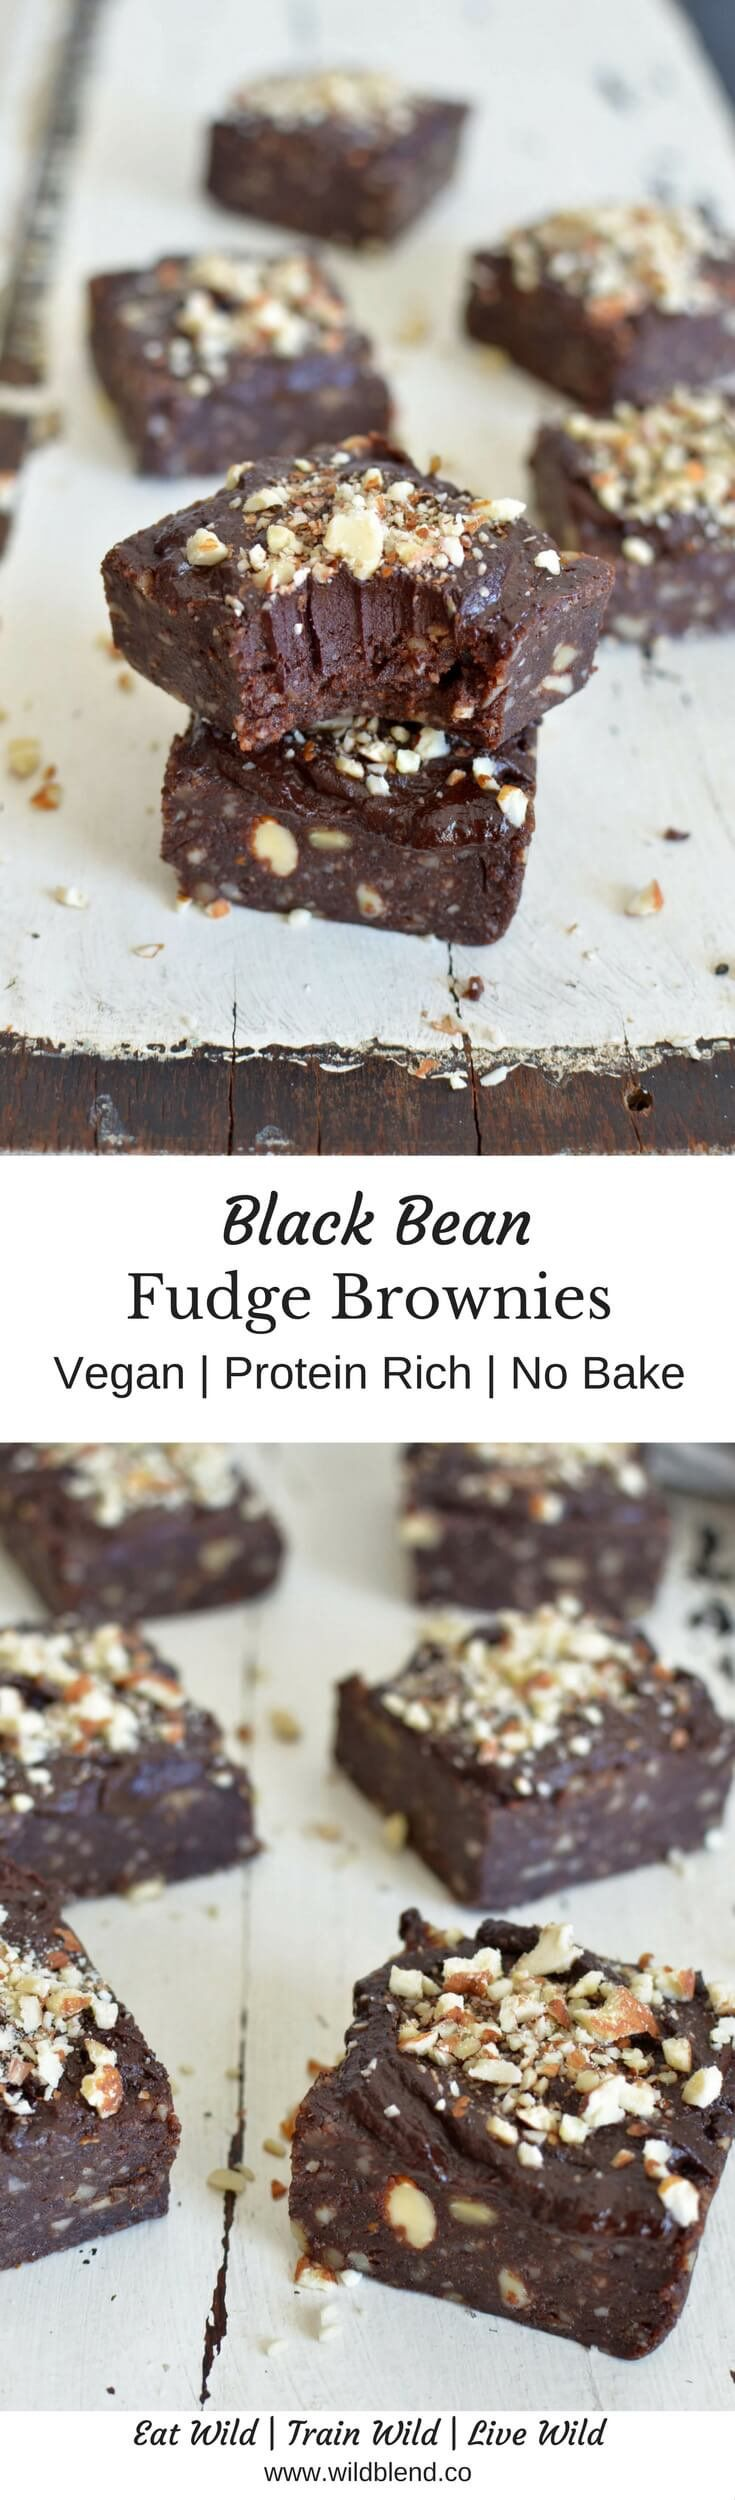 These black bean brownies are everything you want from a brownie - moist, fudge-y, and loaded with protein while still keeping it vegan, gluten free and healthy! Get the recipe here: http://www.wildblend.co/single-post/2017/04/06/Black-Bean-Fudge-Brownies